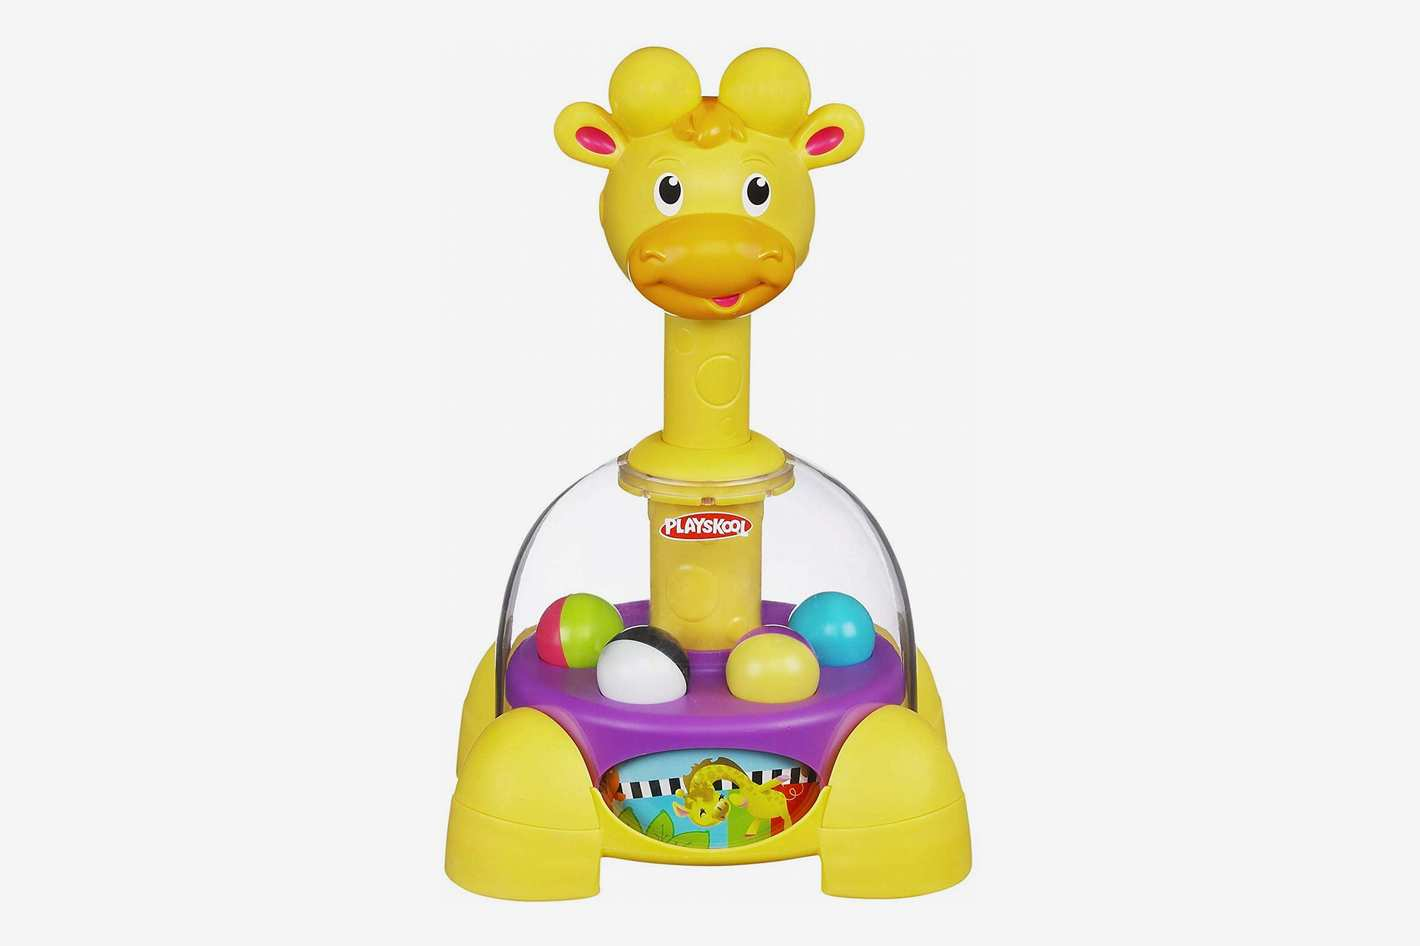 Playskool Tumble Top Spinning and Popping Baby Toy